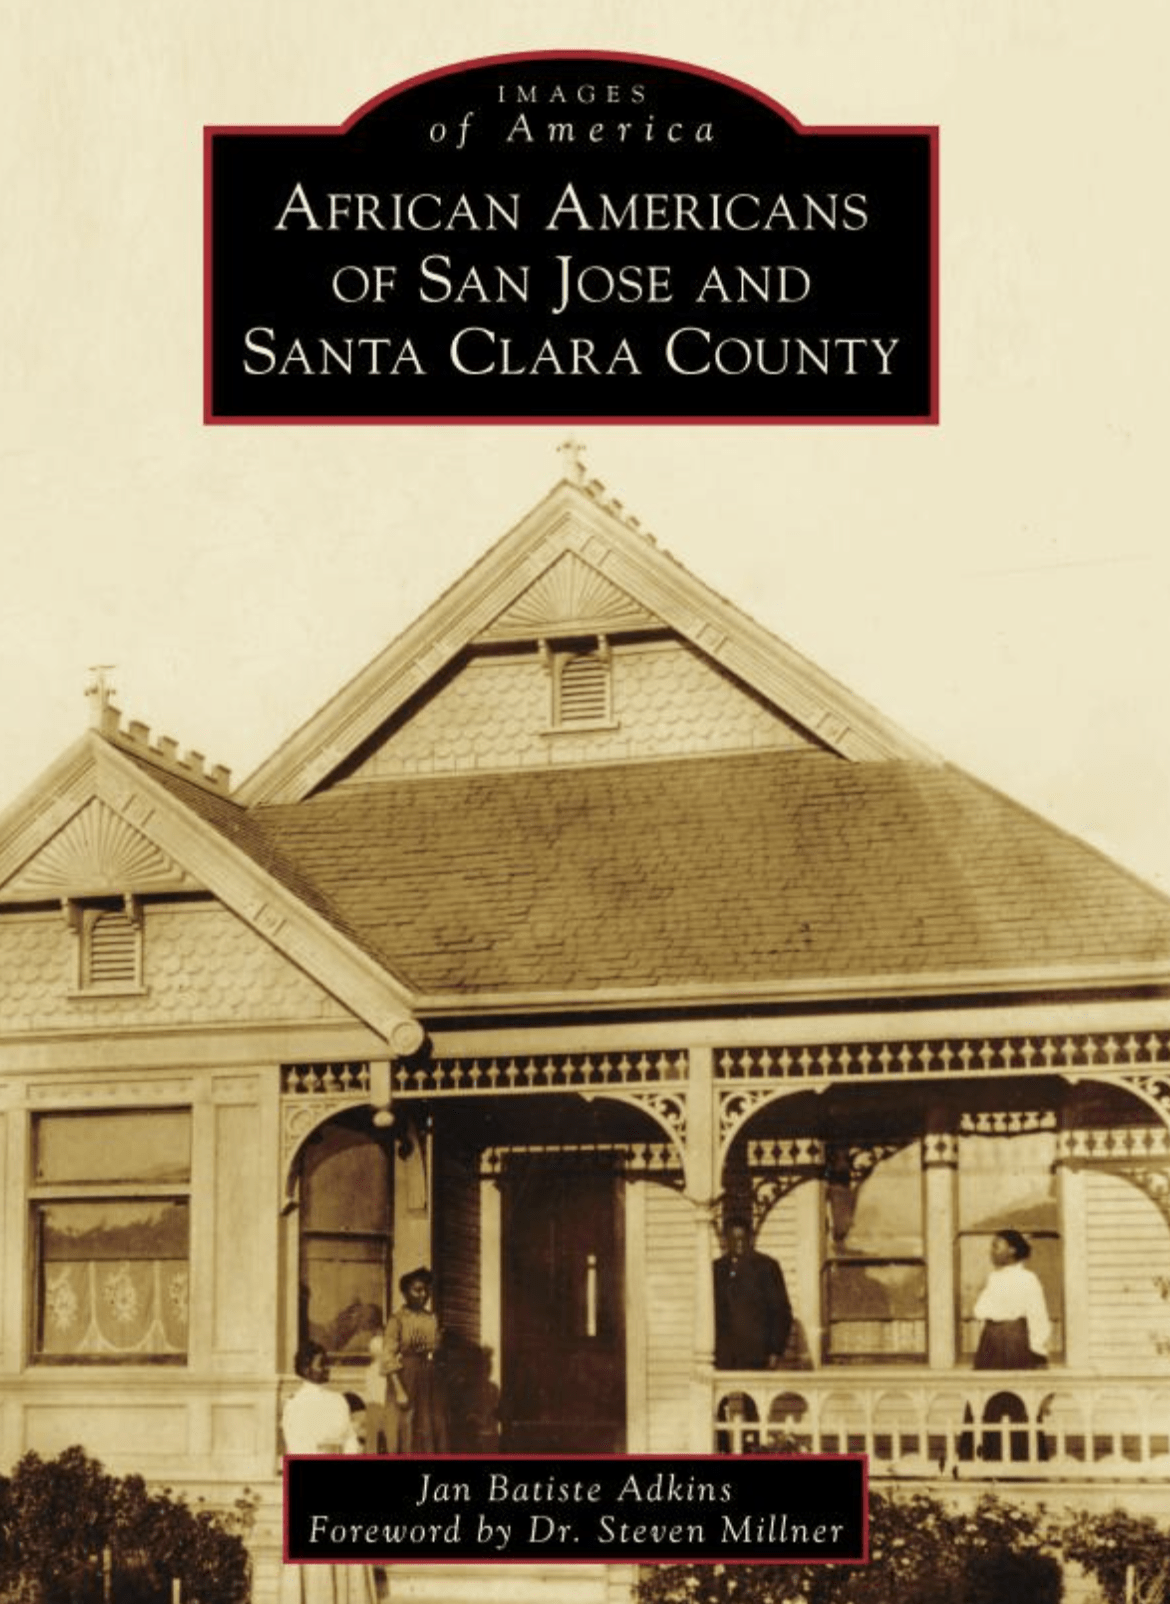 The History of African Americans in Santa Clara County, 1780 - Present